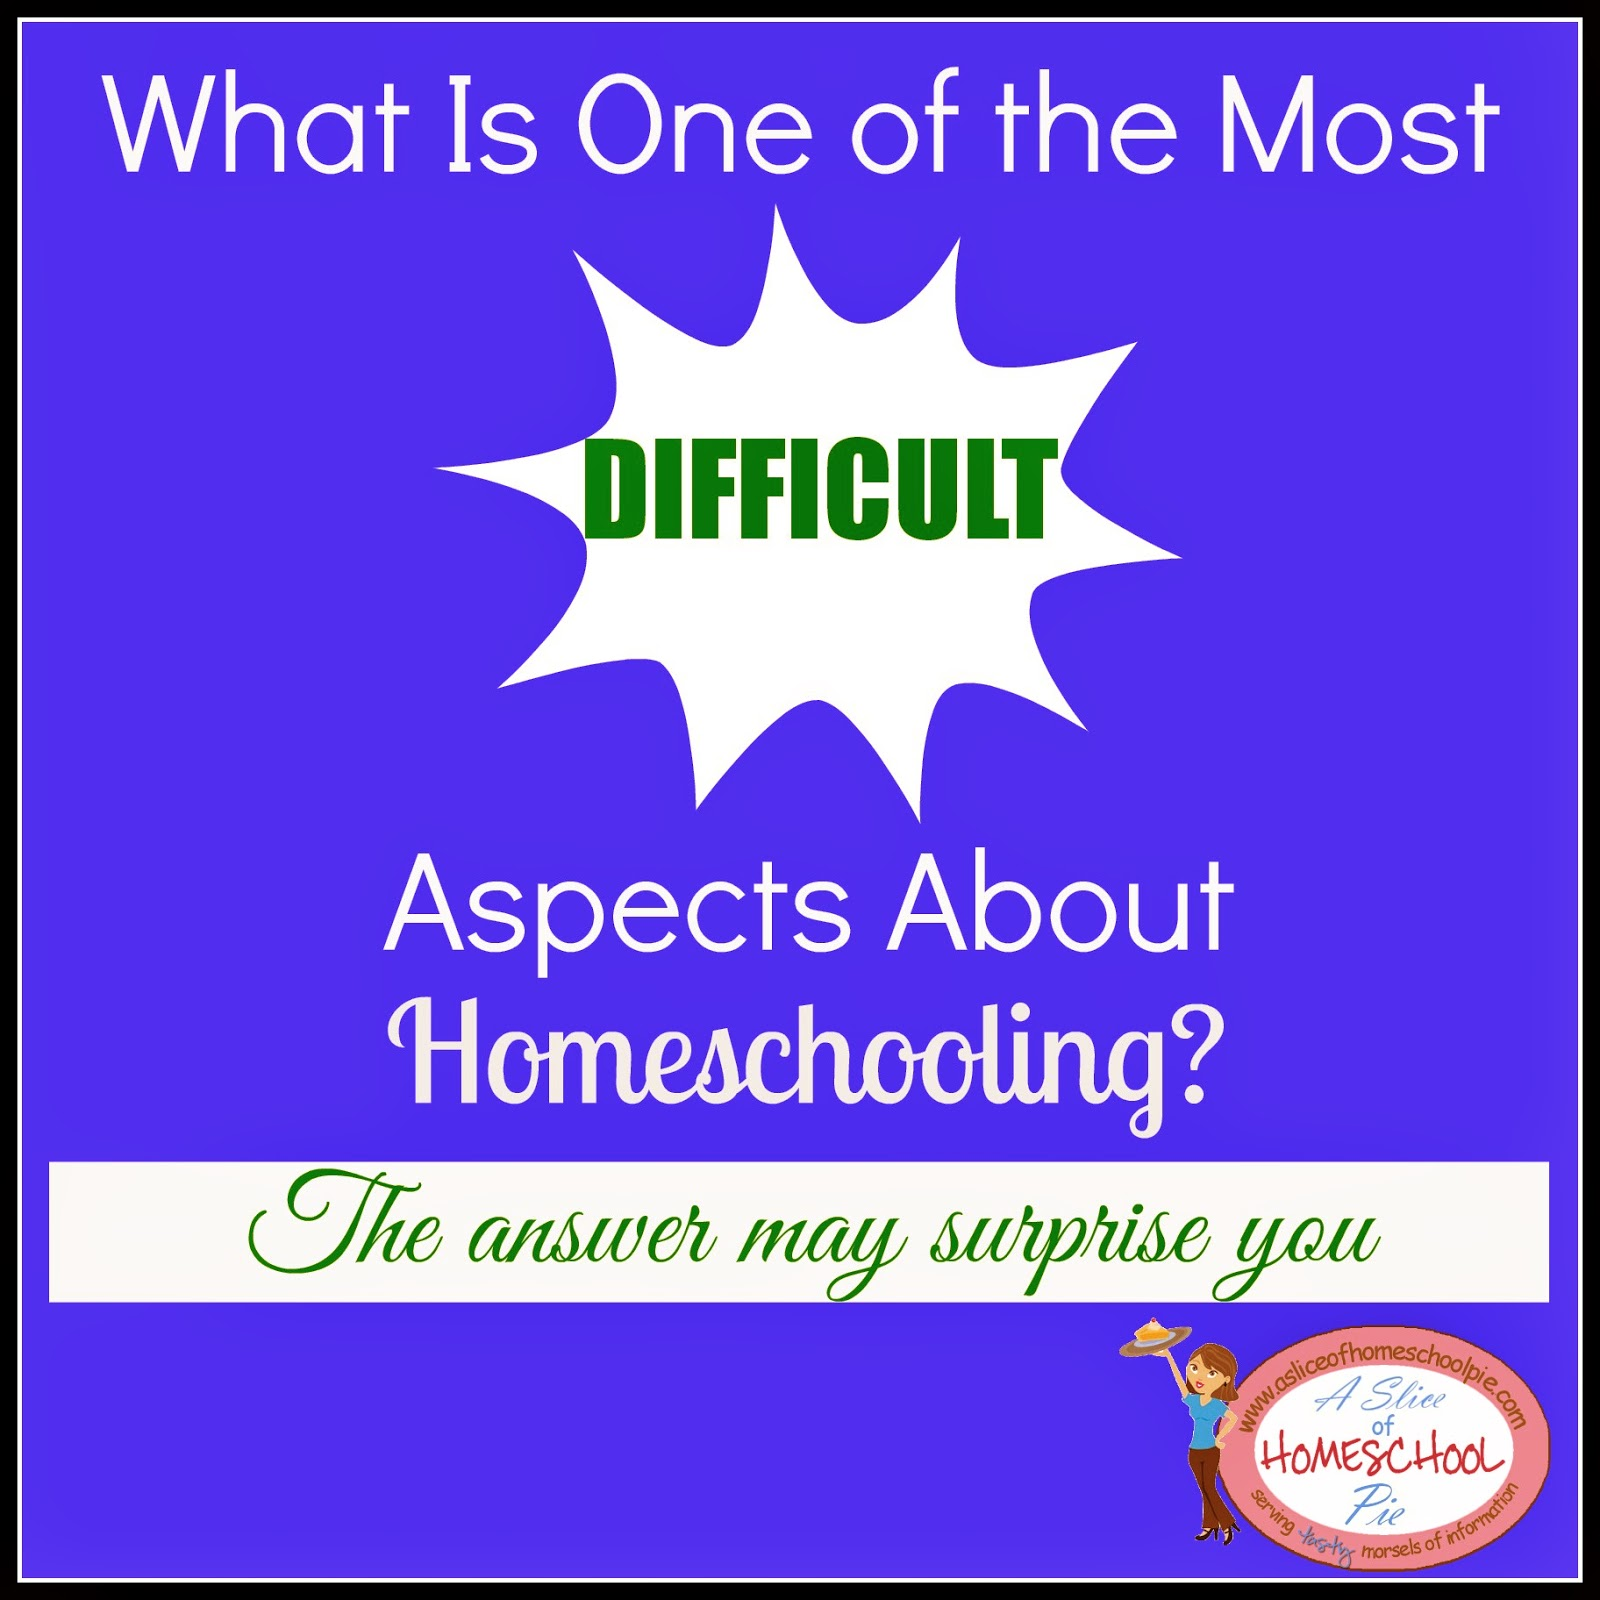 Difficult-Aspect-About-Homeschooling-by-ASliceOfHomeschoolPie.com